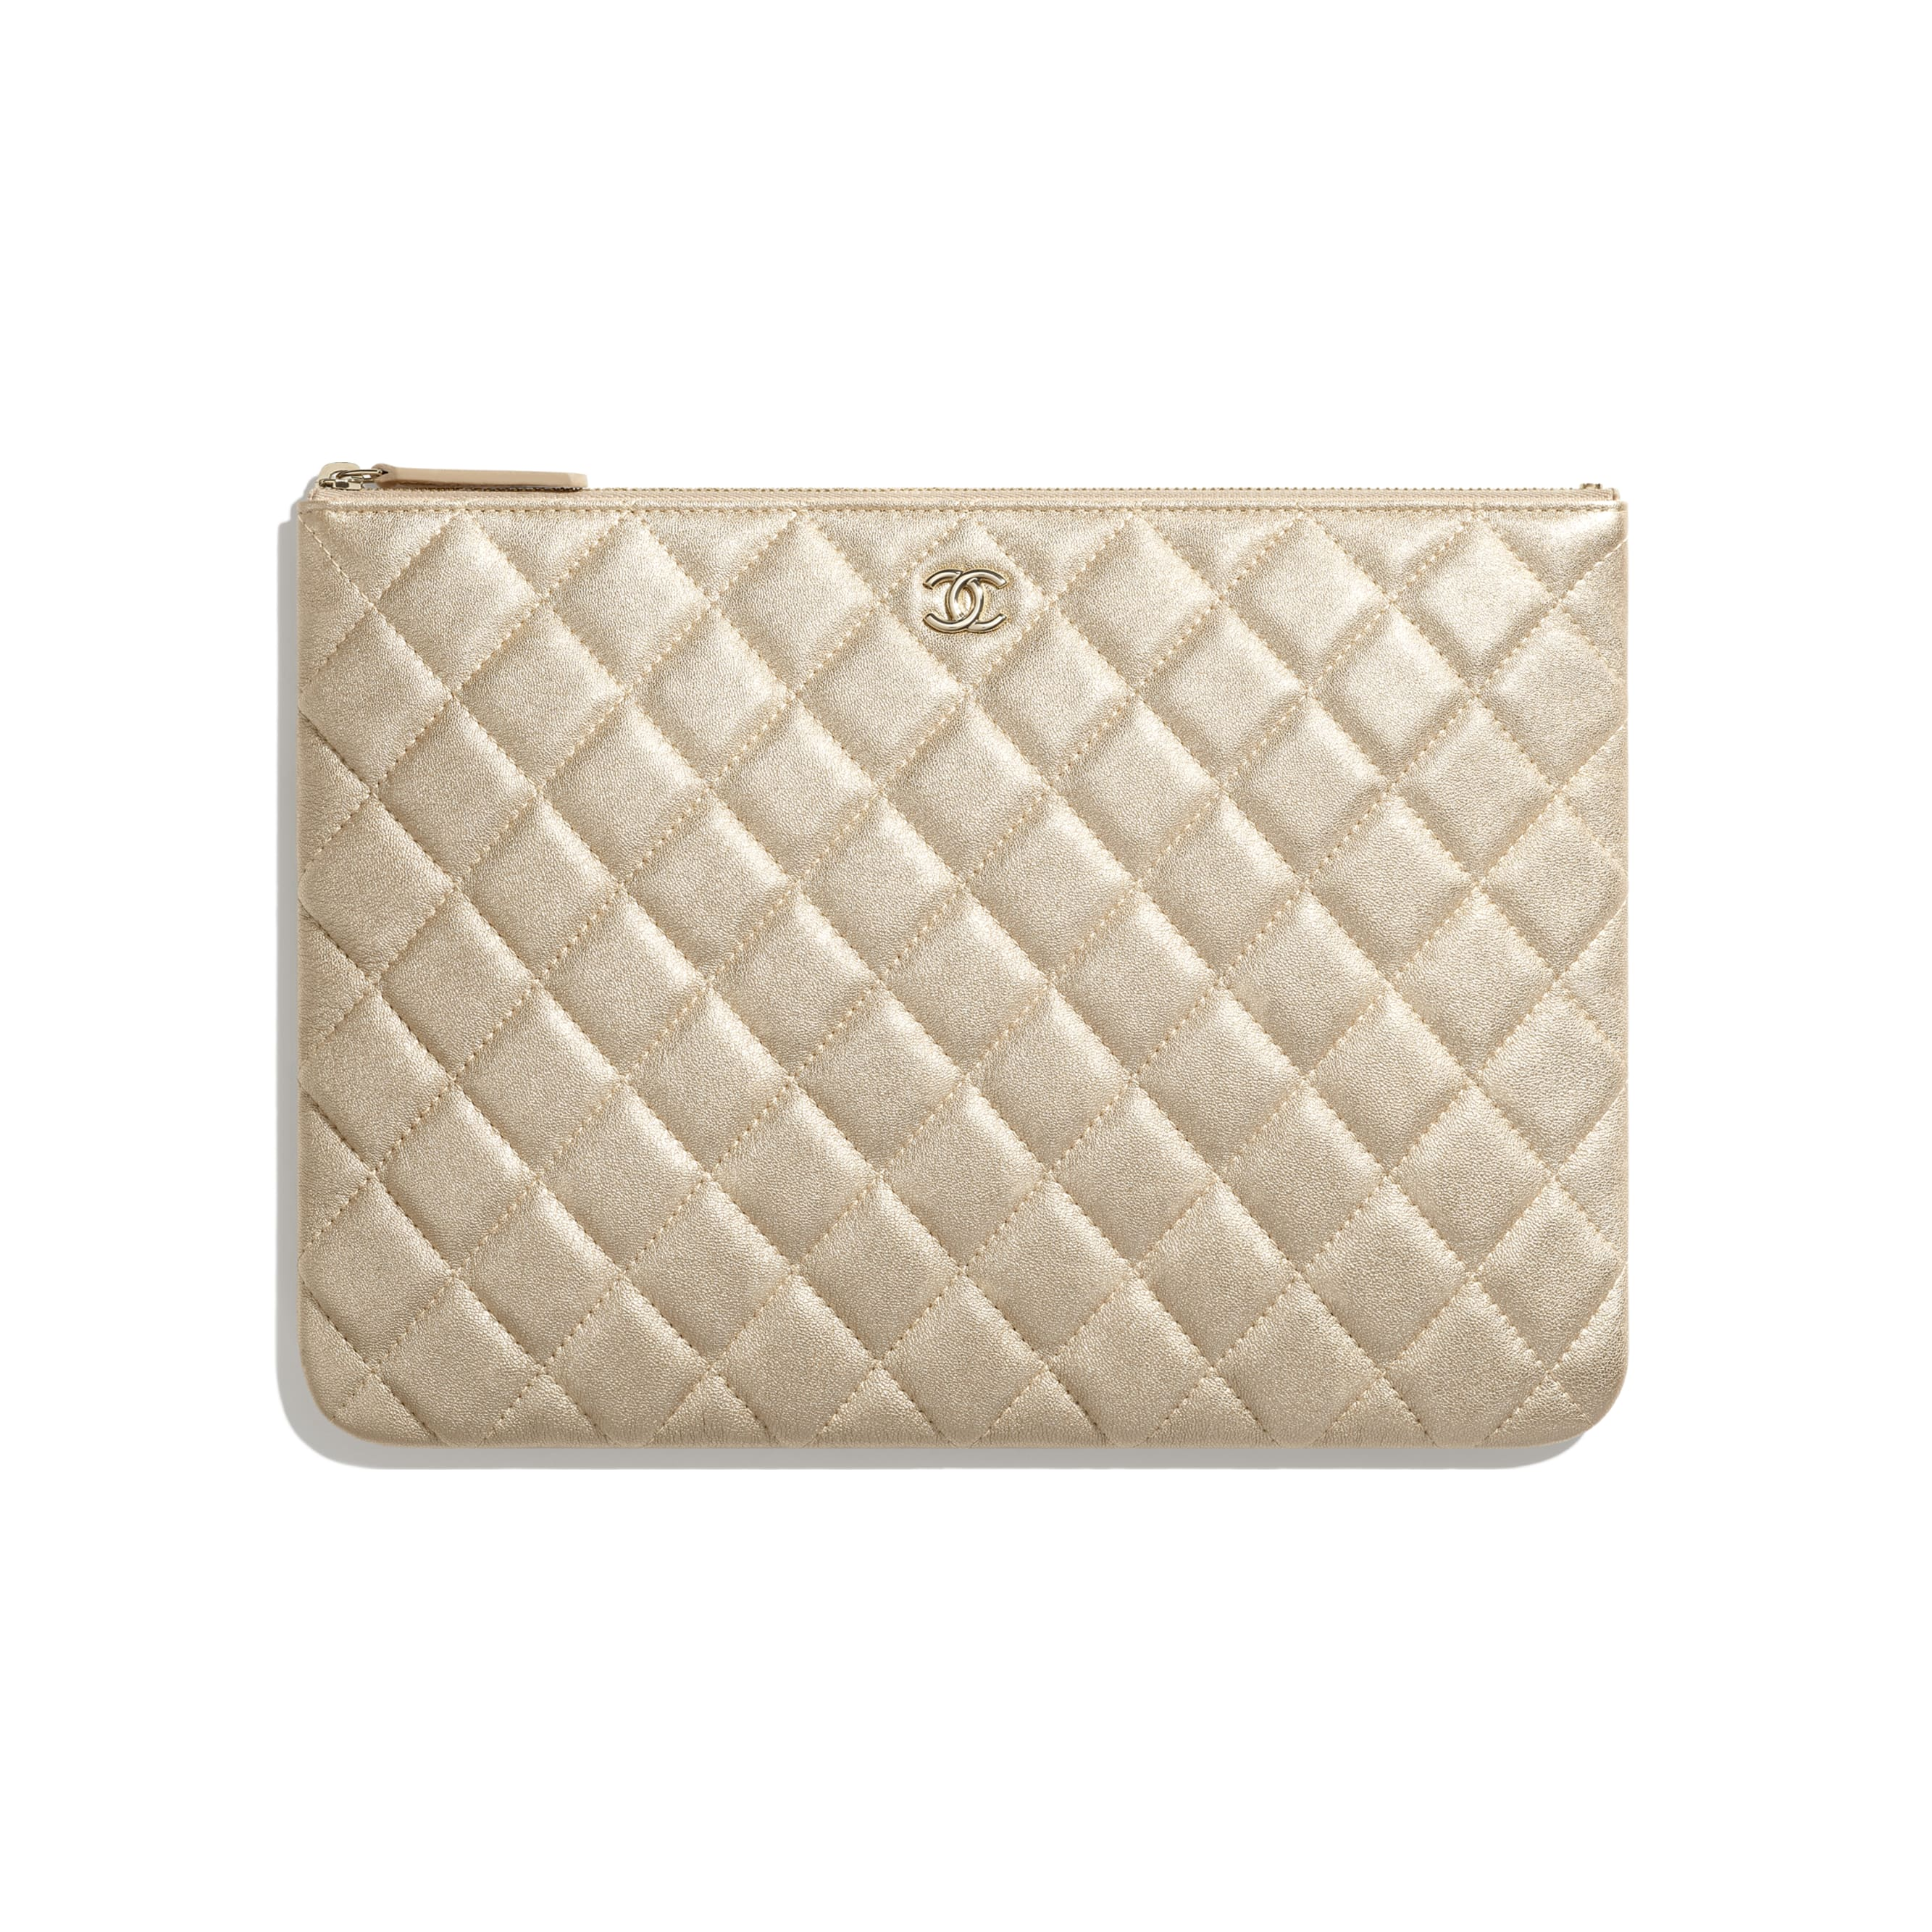 Classic Pouch - Gold - Metallic Lambskin & Gold Metal - CHANEL - Default view - see standard sized version